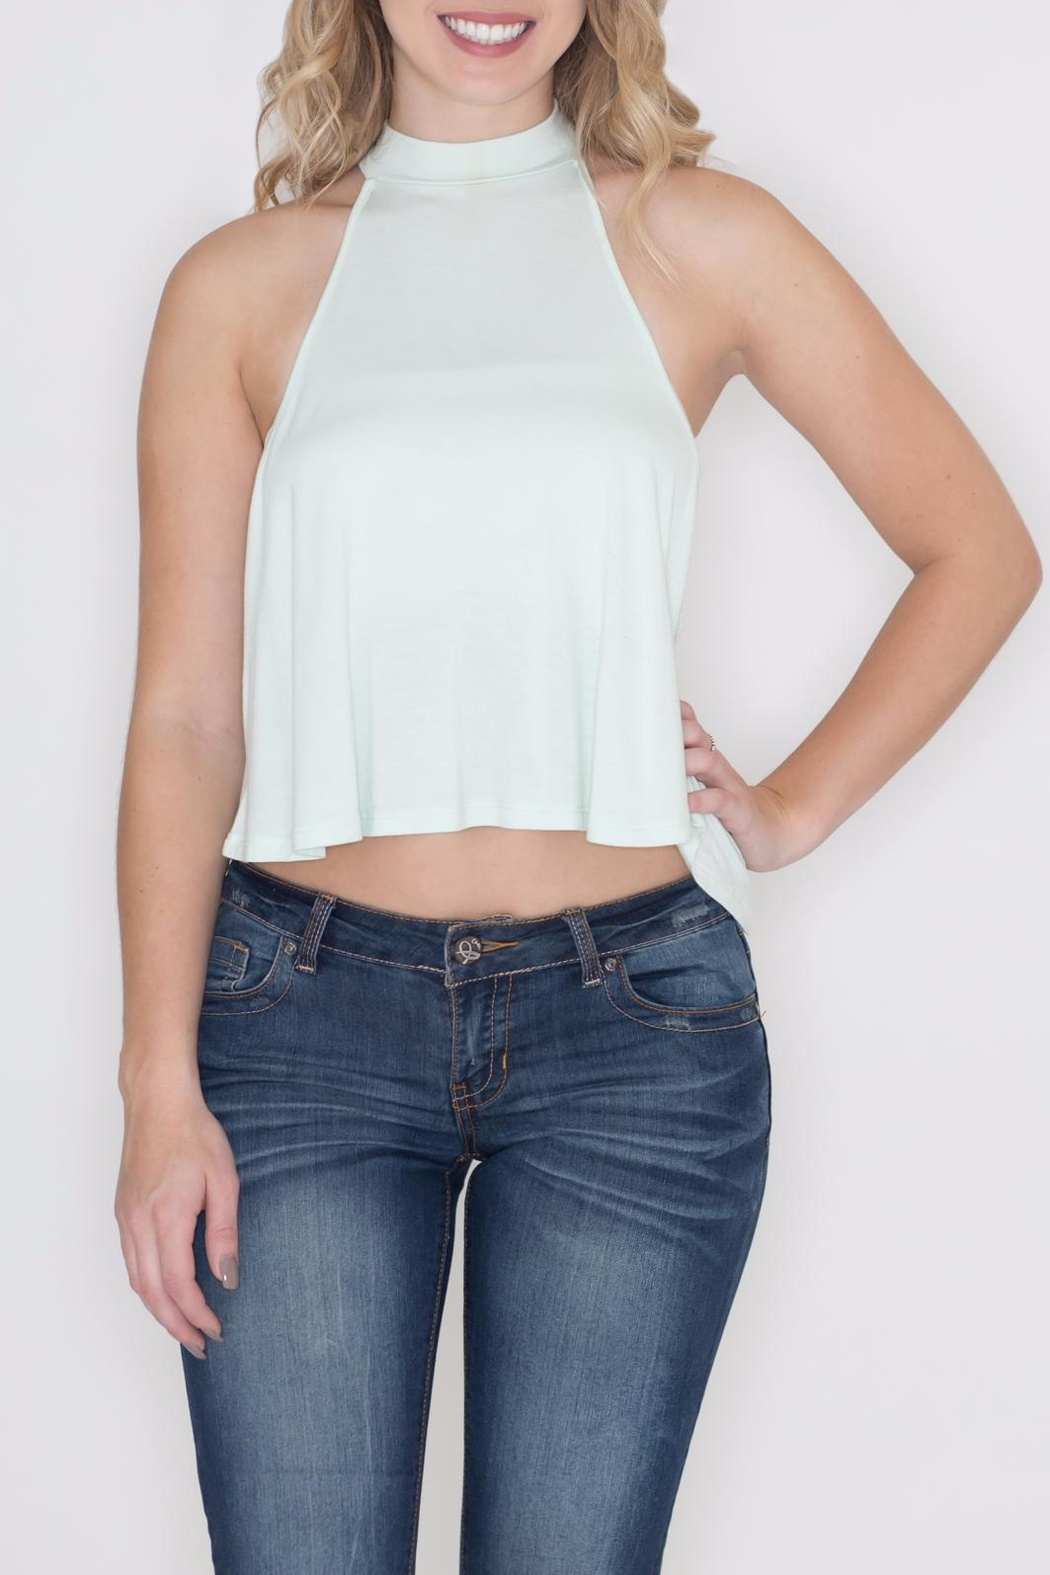 Zenana Outfitters Keyhole Crop Top - Main Image